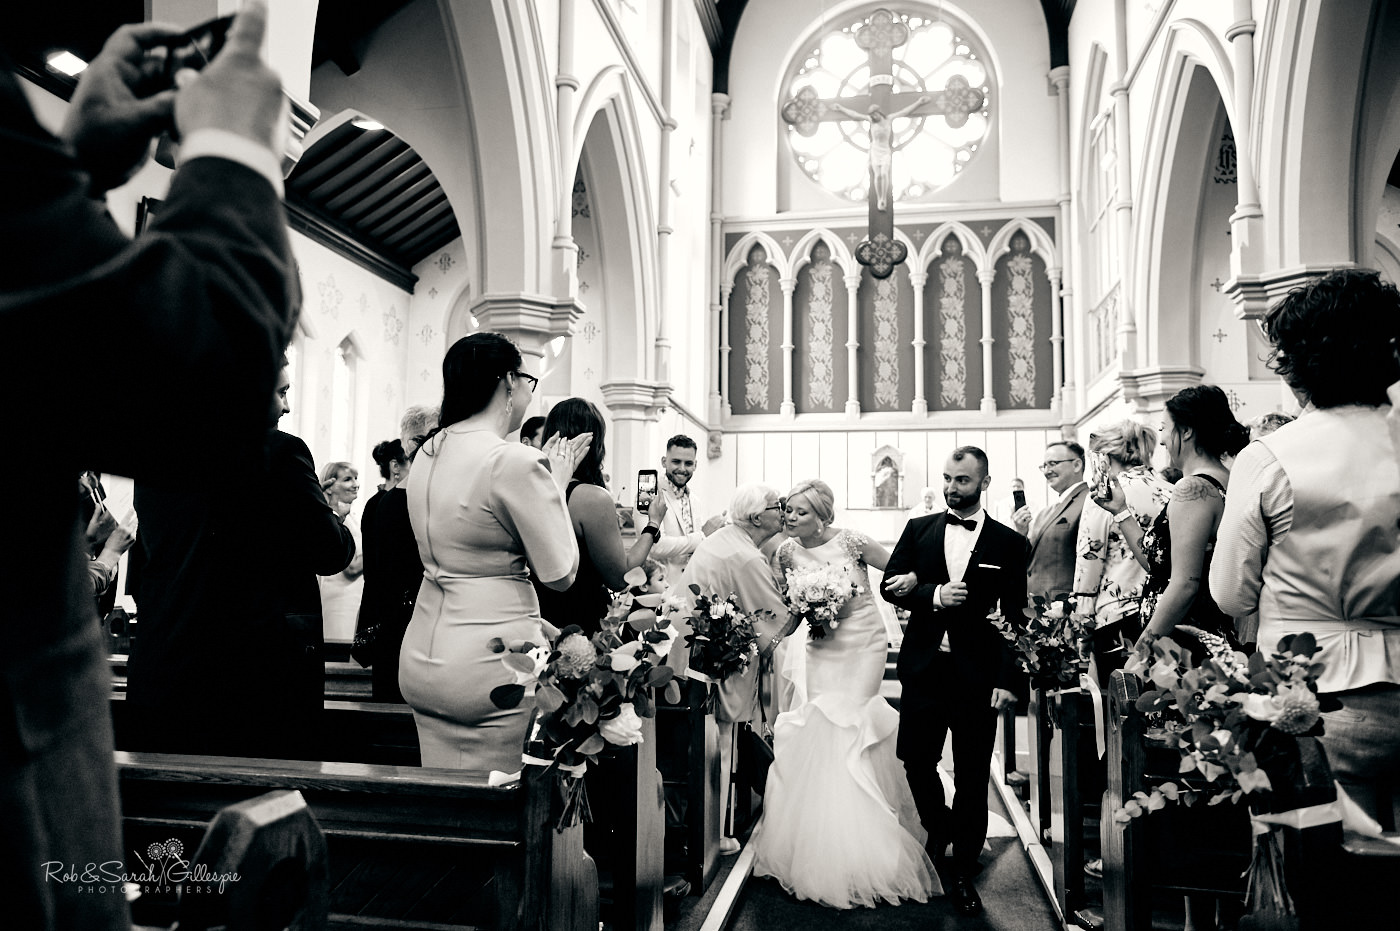 Catholic wedding ceremony at St Anne's church in Birmingham